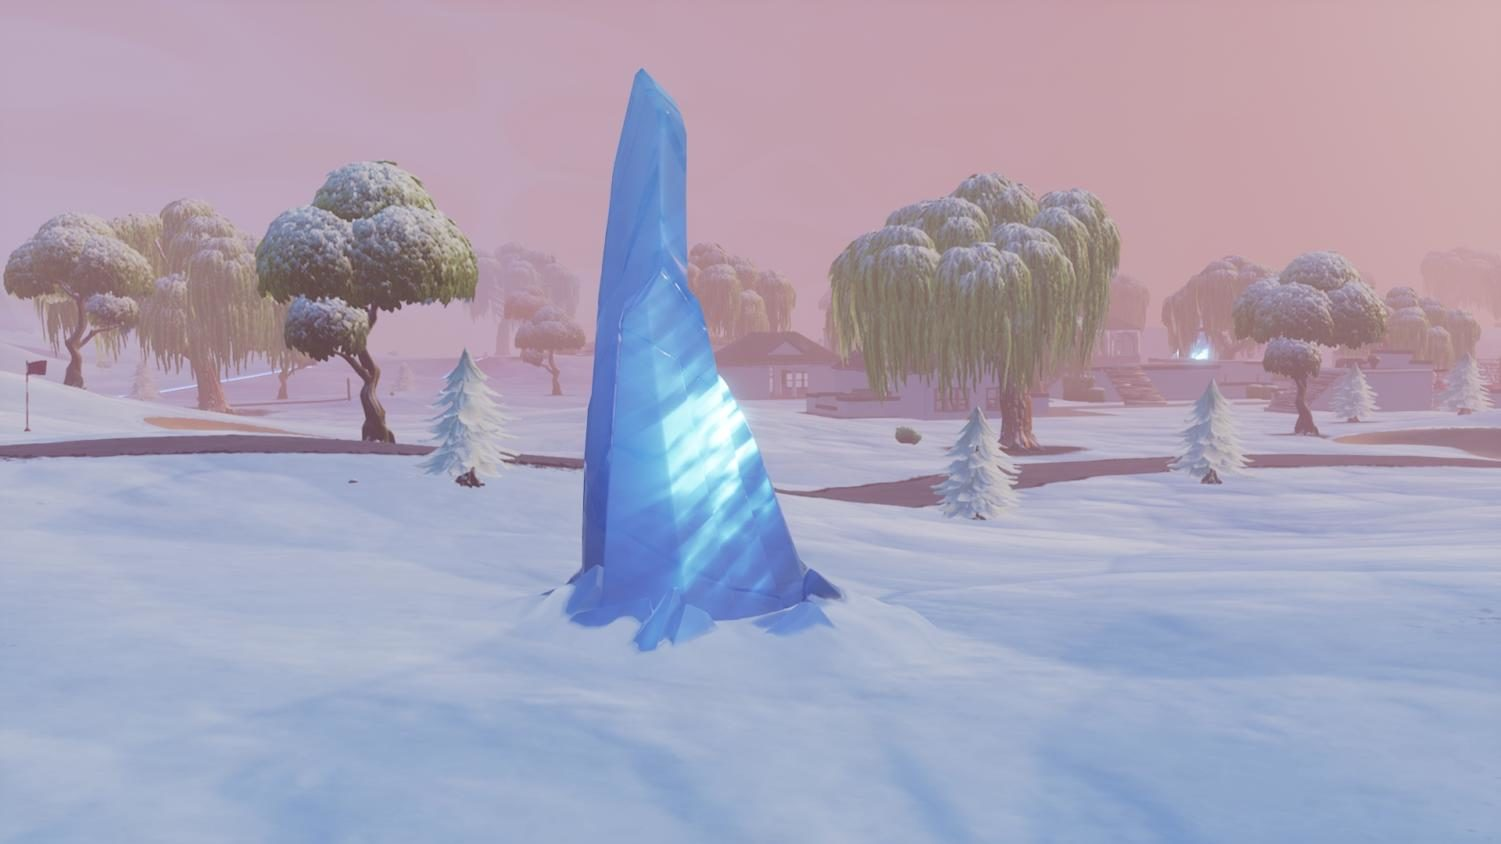 An in game look at Fortnite's new winter landscape